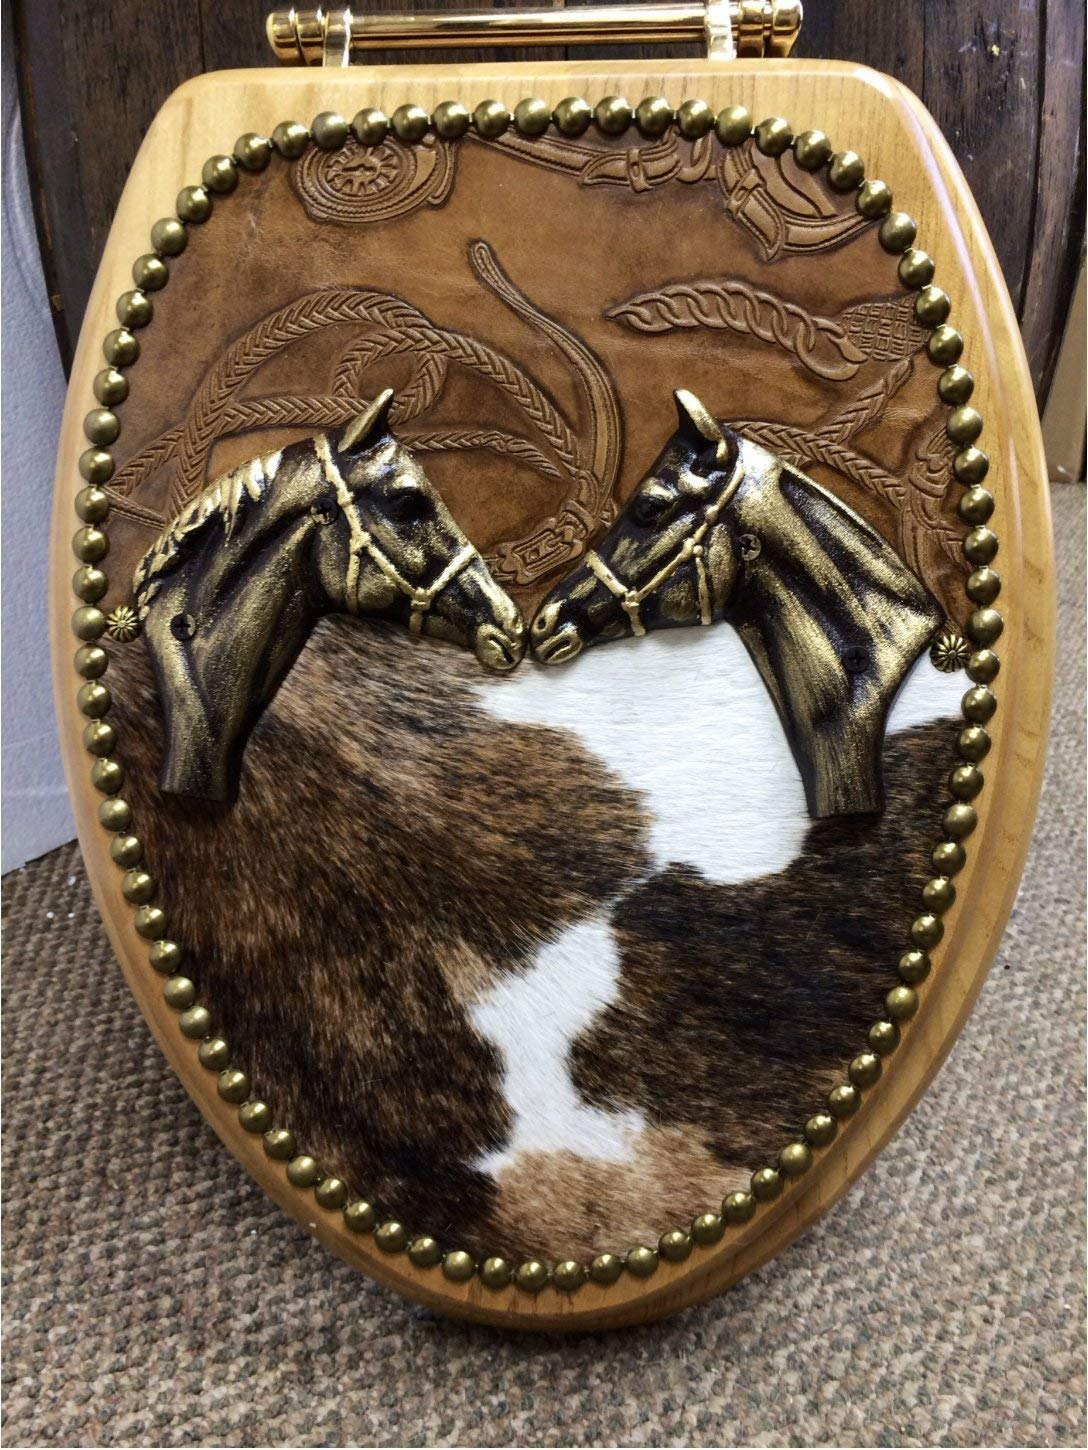 Cowboy Cowhide & Leather Western Decor Horse LOVERS Oak Toilet Seat Cover by Signature Cowboy Western Decor (Image #1)